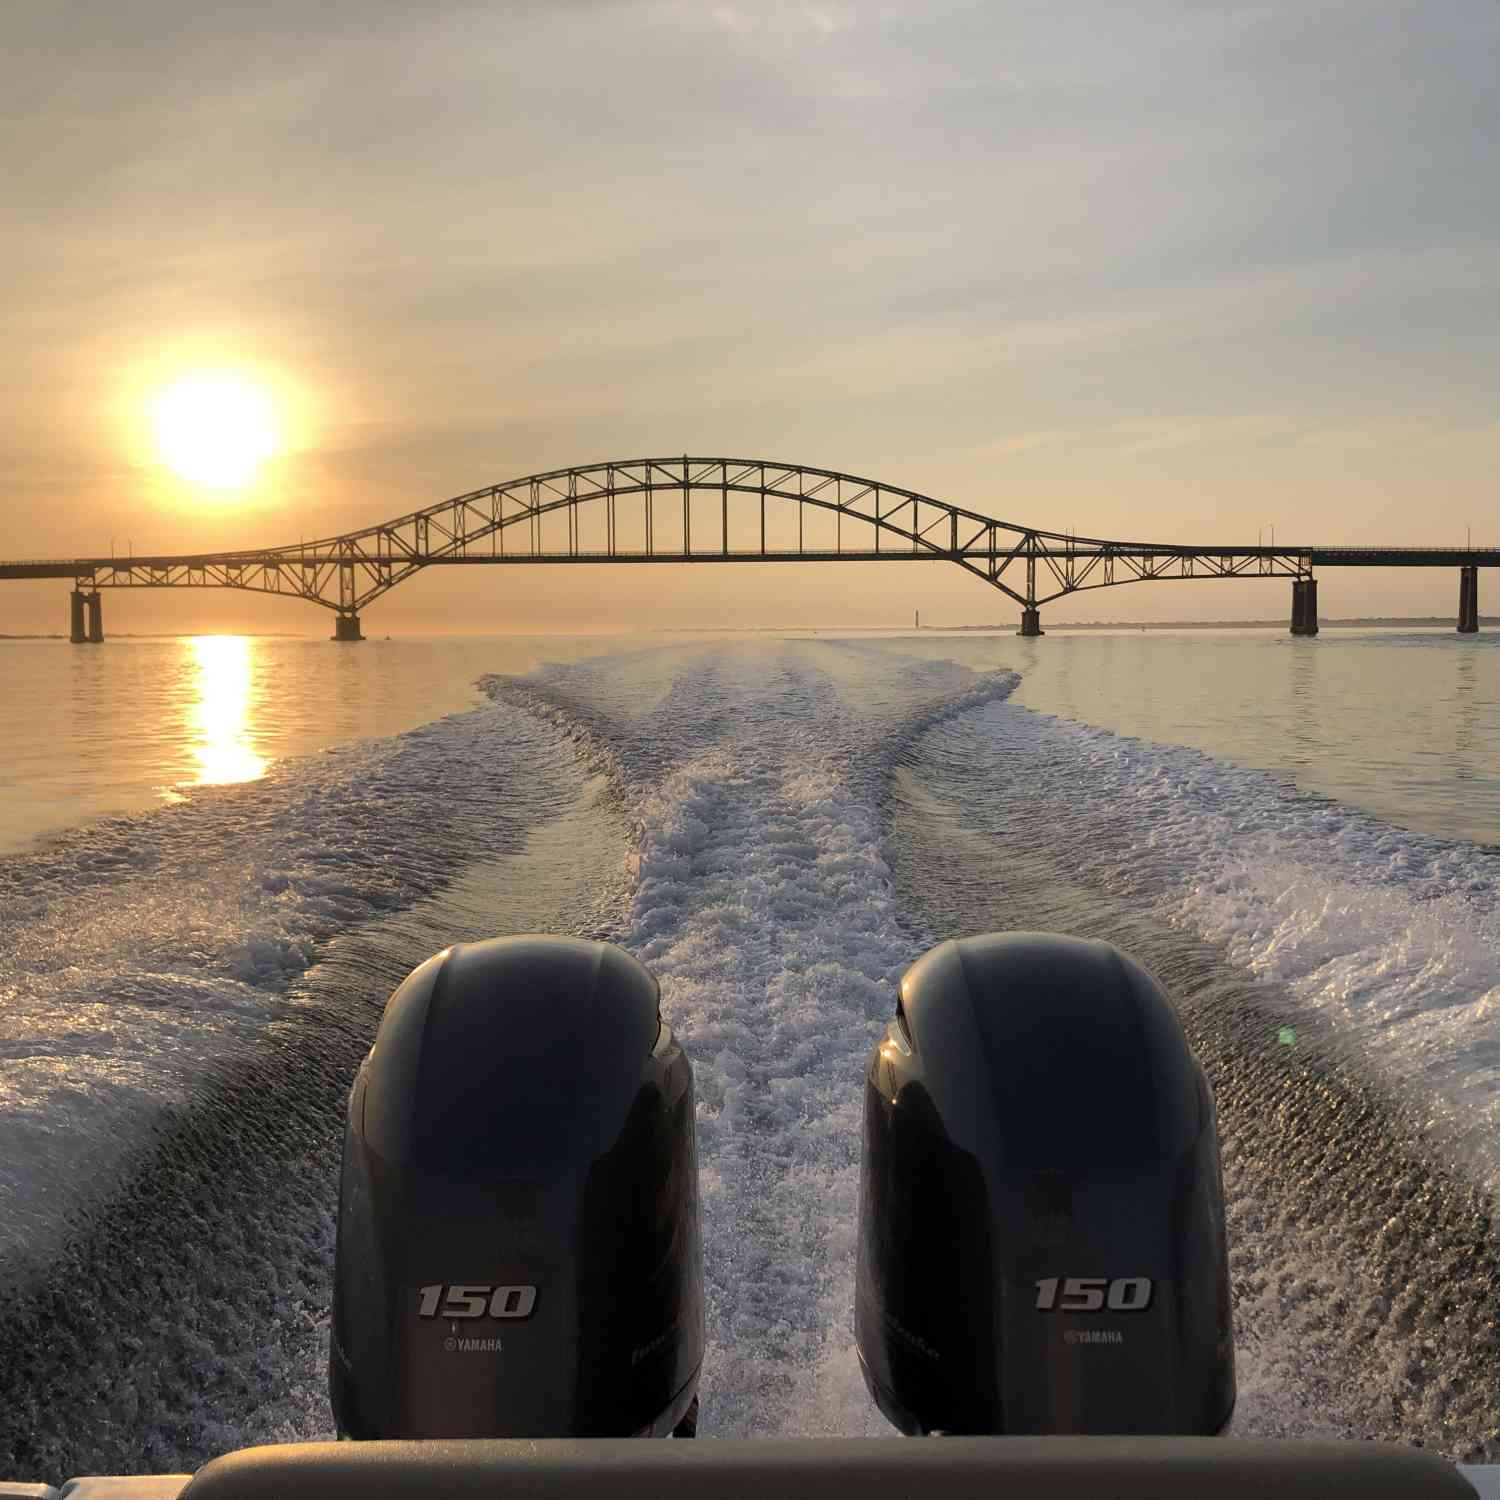 Title: Jack horodiski - On board their Sportsman Open 252 Center Console - Location: Robert Moses bridge. Participating in the Photo Contest #SportsmanJuly2020